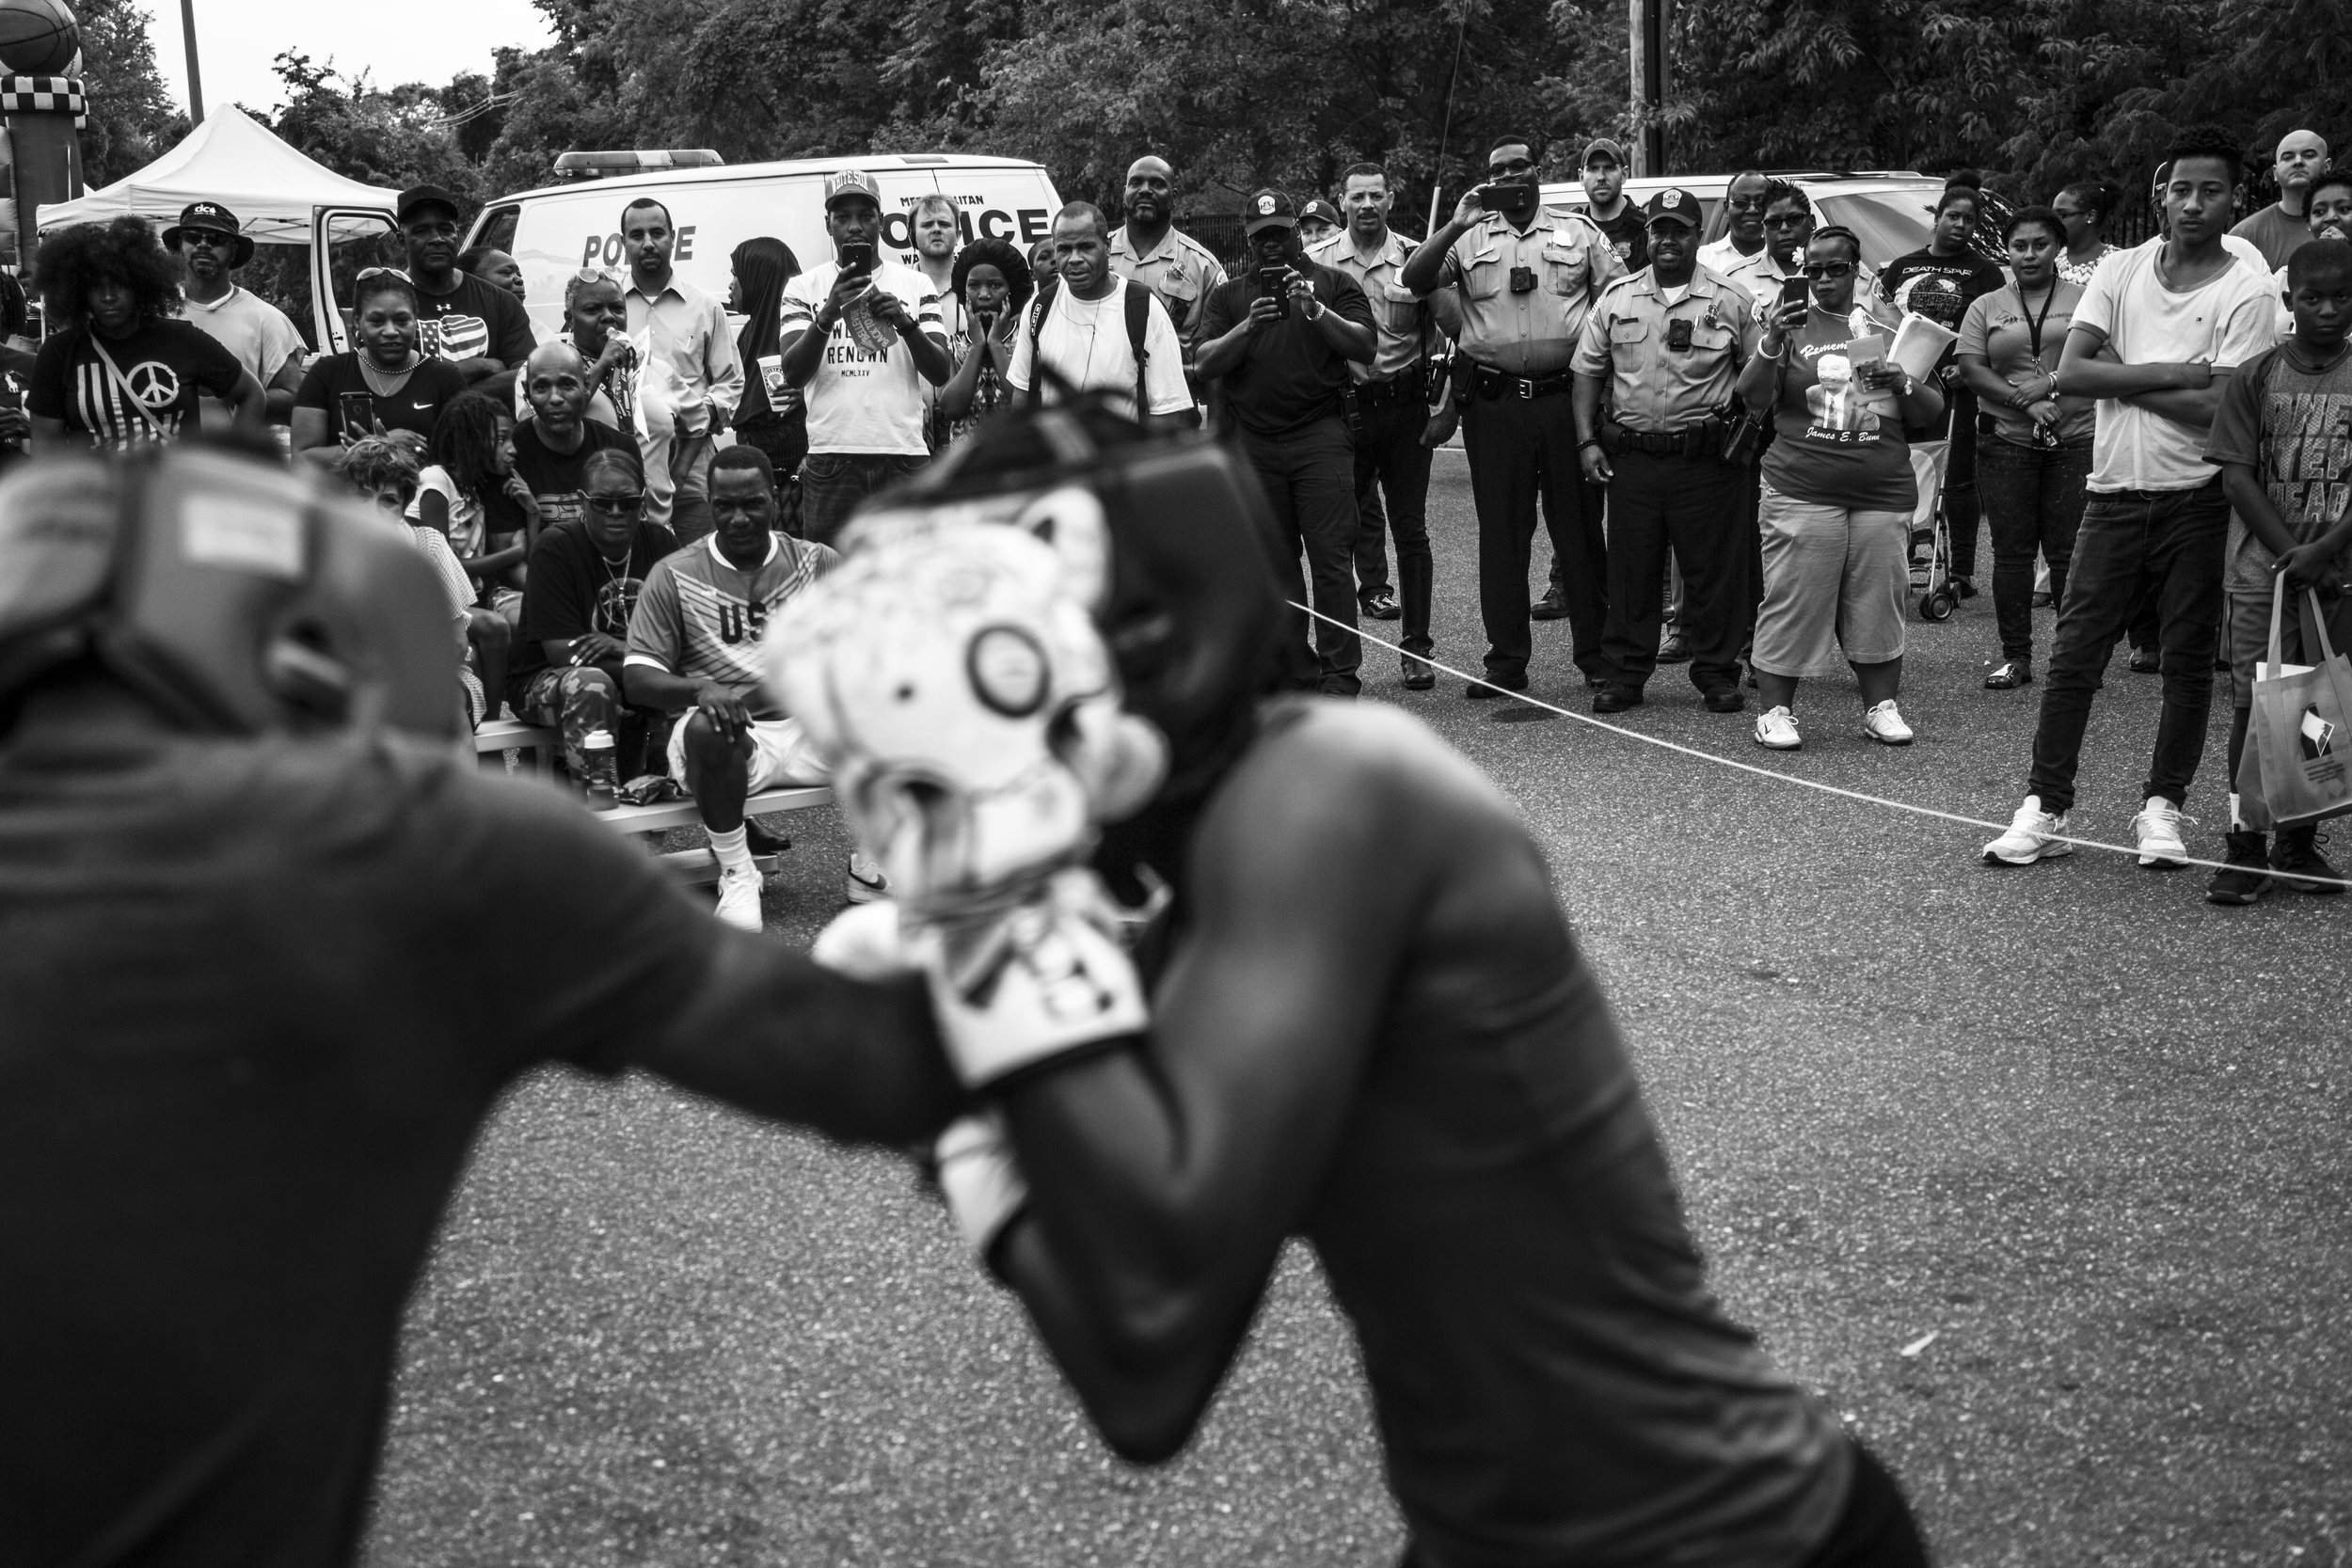 Tiara spars against a teammate in an exhibition fight during the Metropolitan Police Dept.'s National Night Out, an event that promotes police-community bonding.